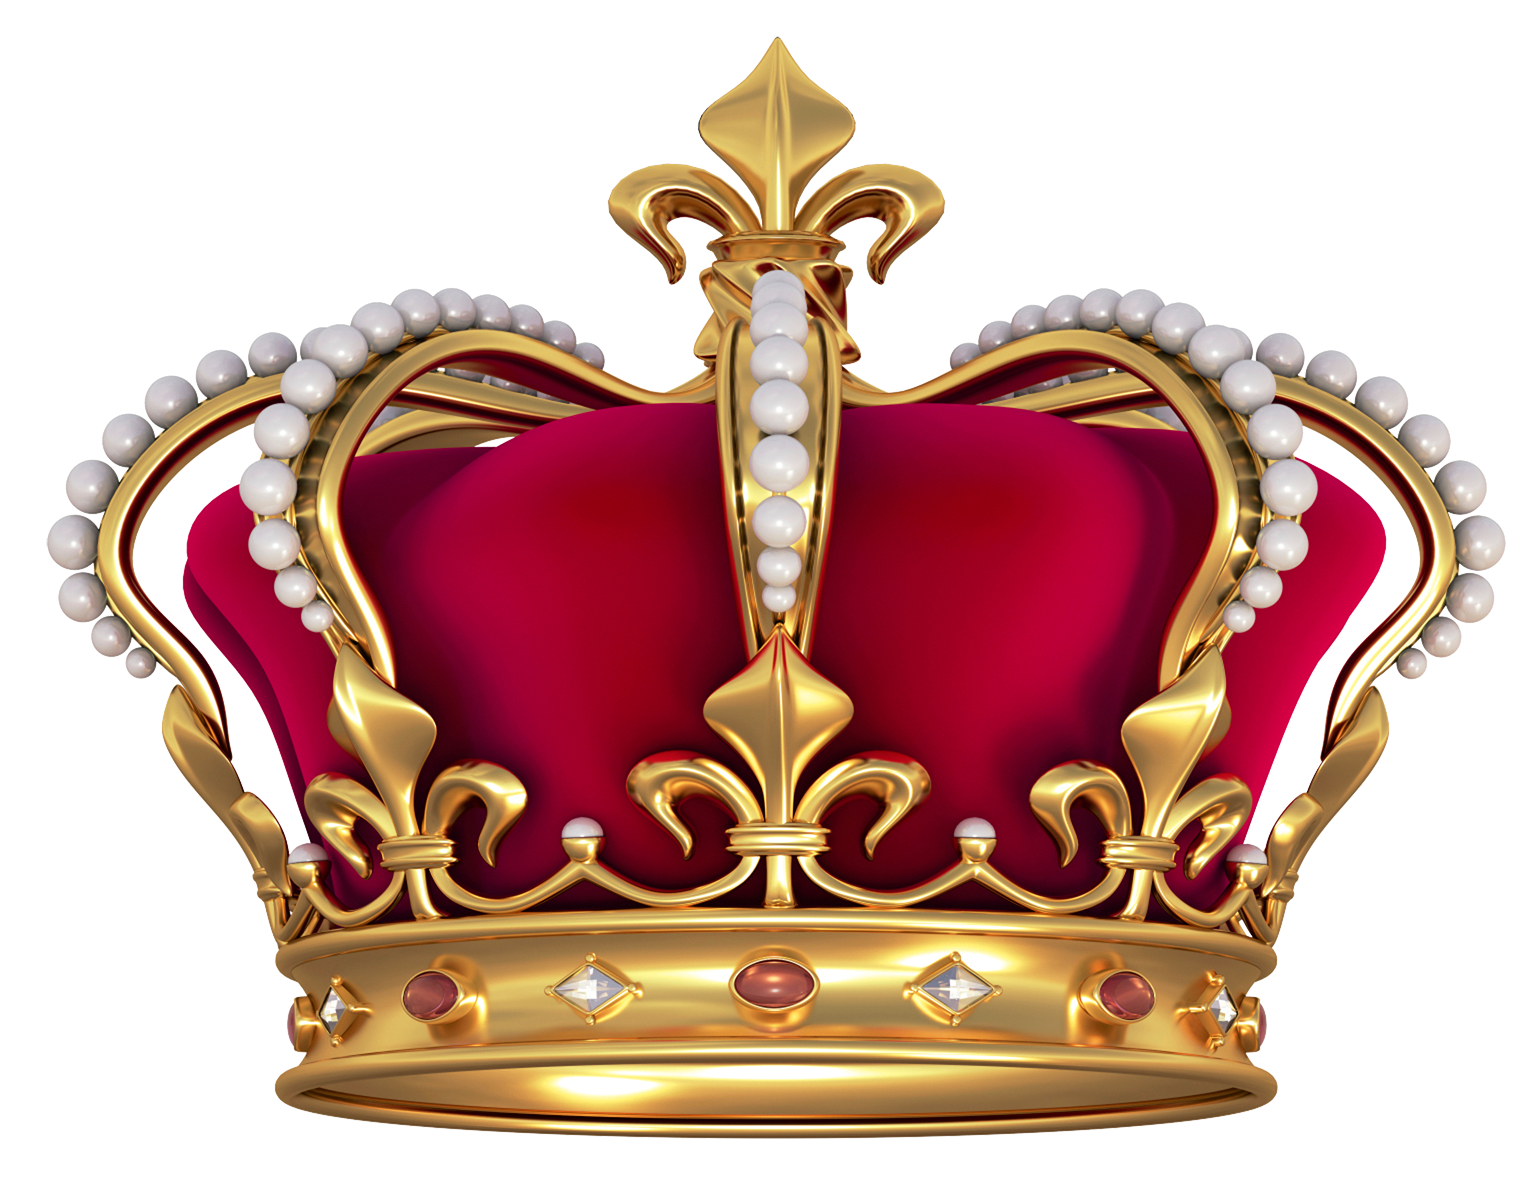 Transparent king crown png. Red gold with pearls